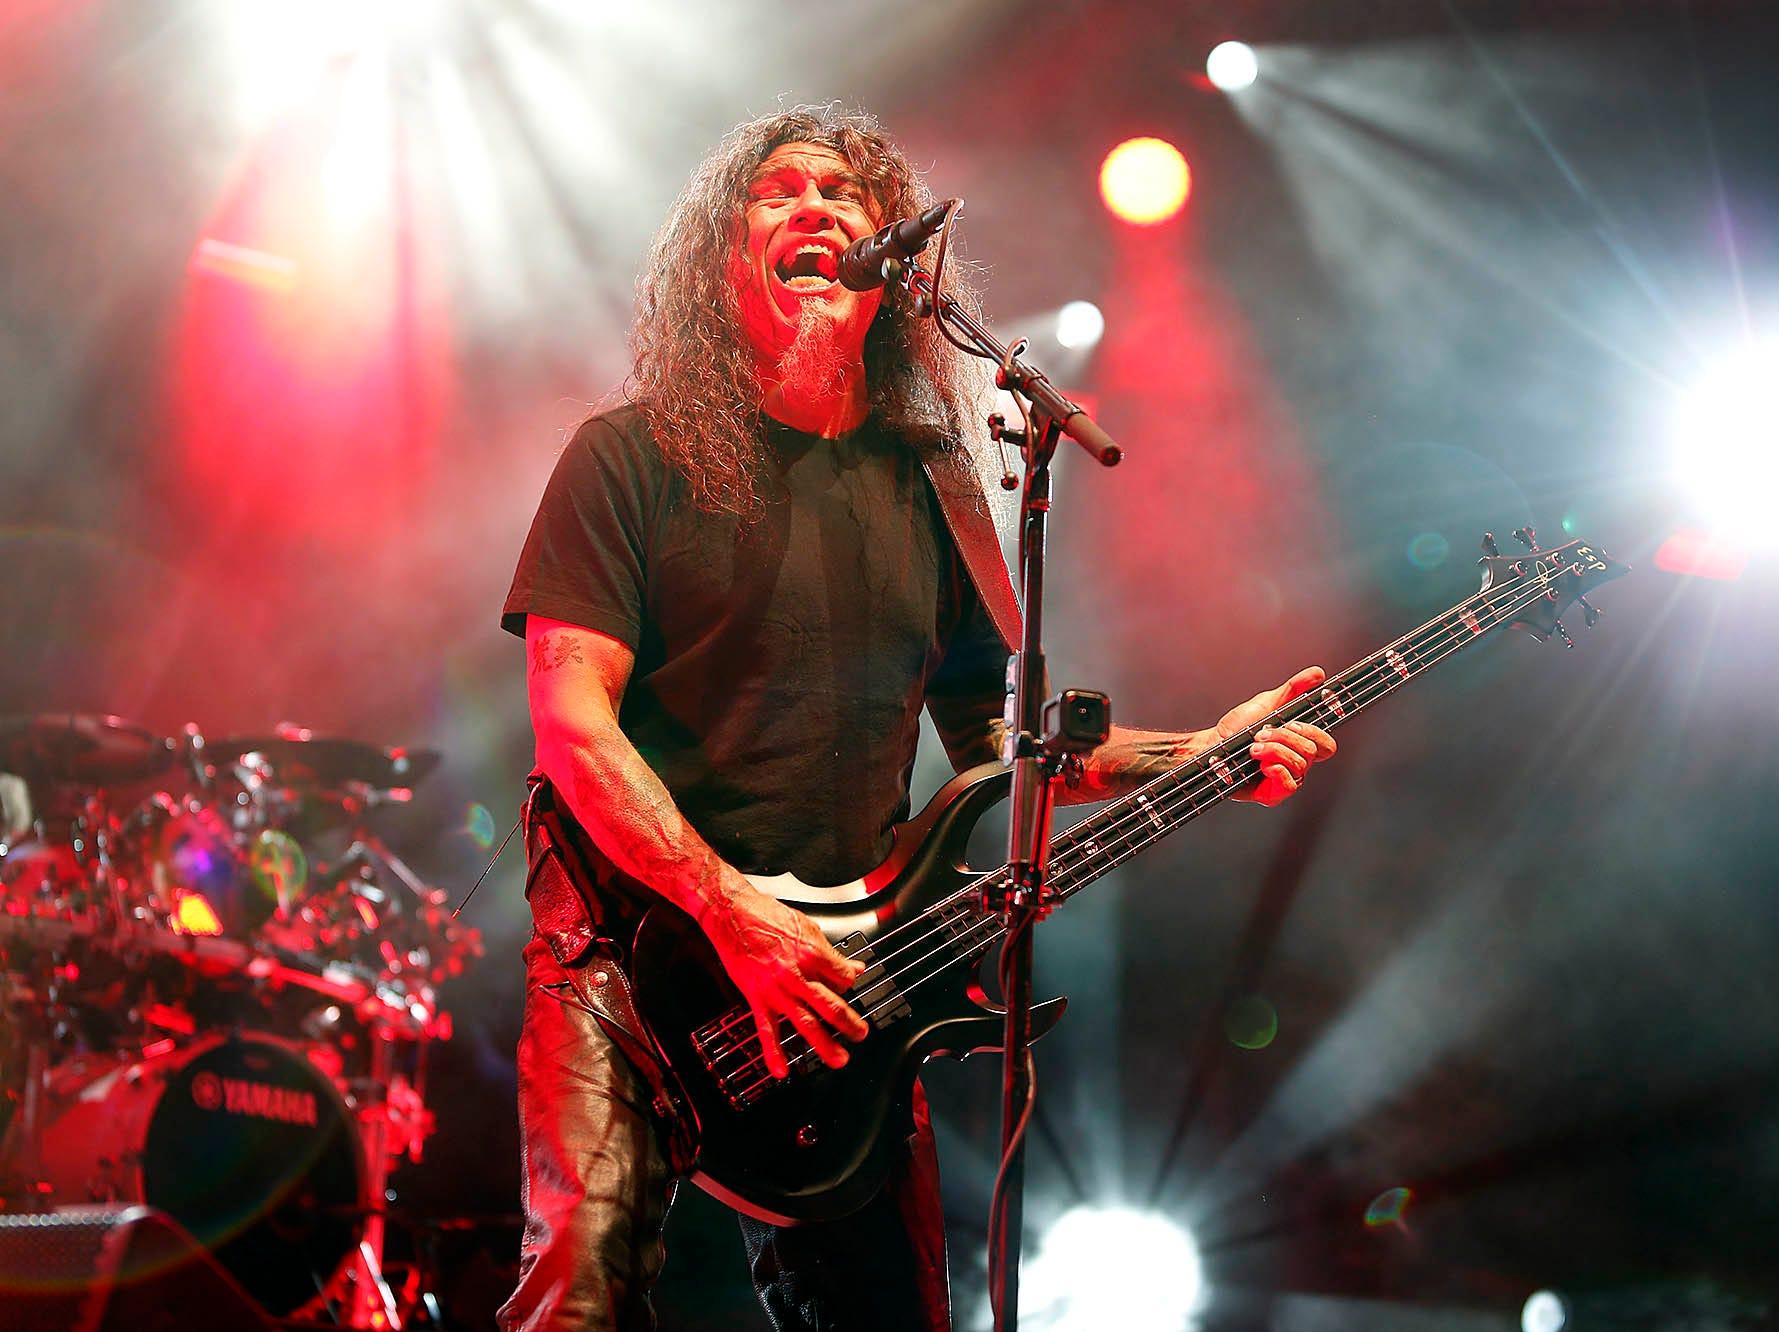 Slayer performs at Ak-Chin Pavilion in Phoenix on May 2, 2019.